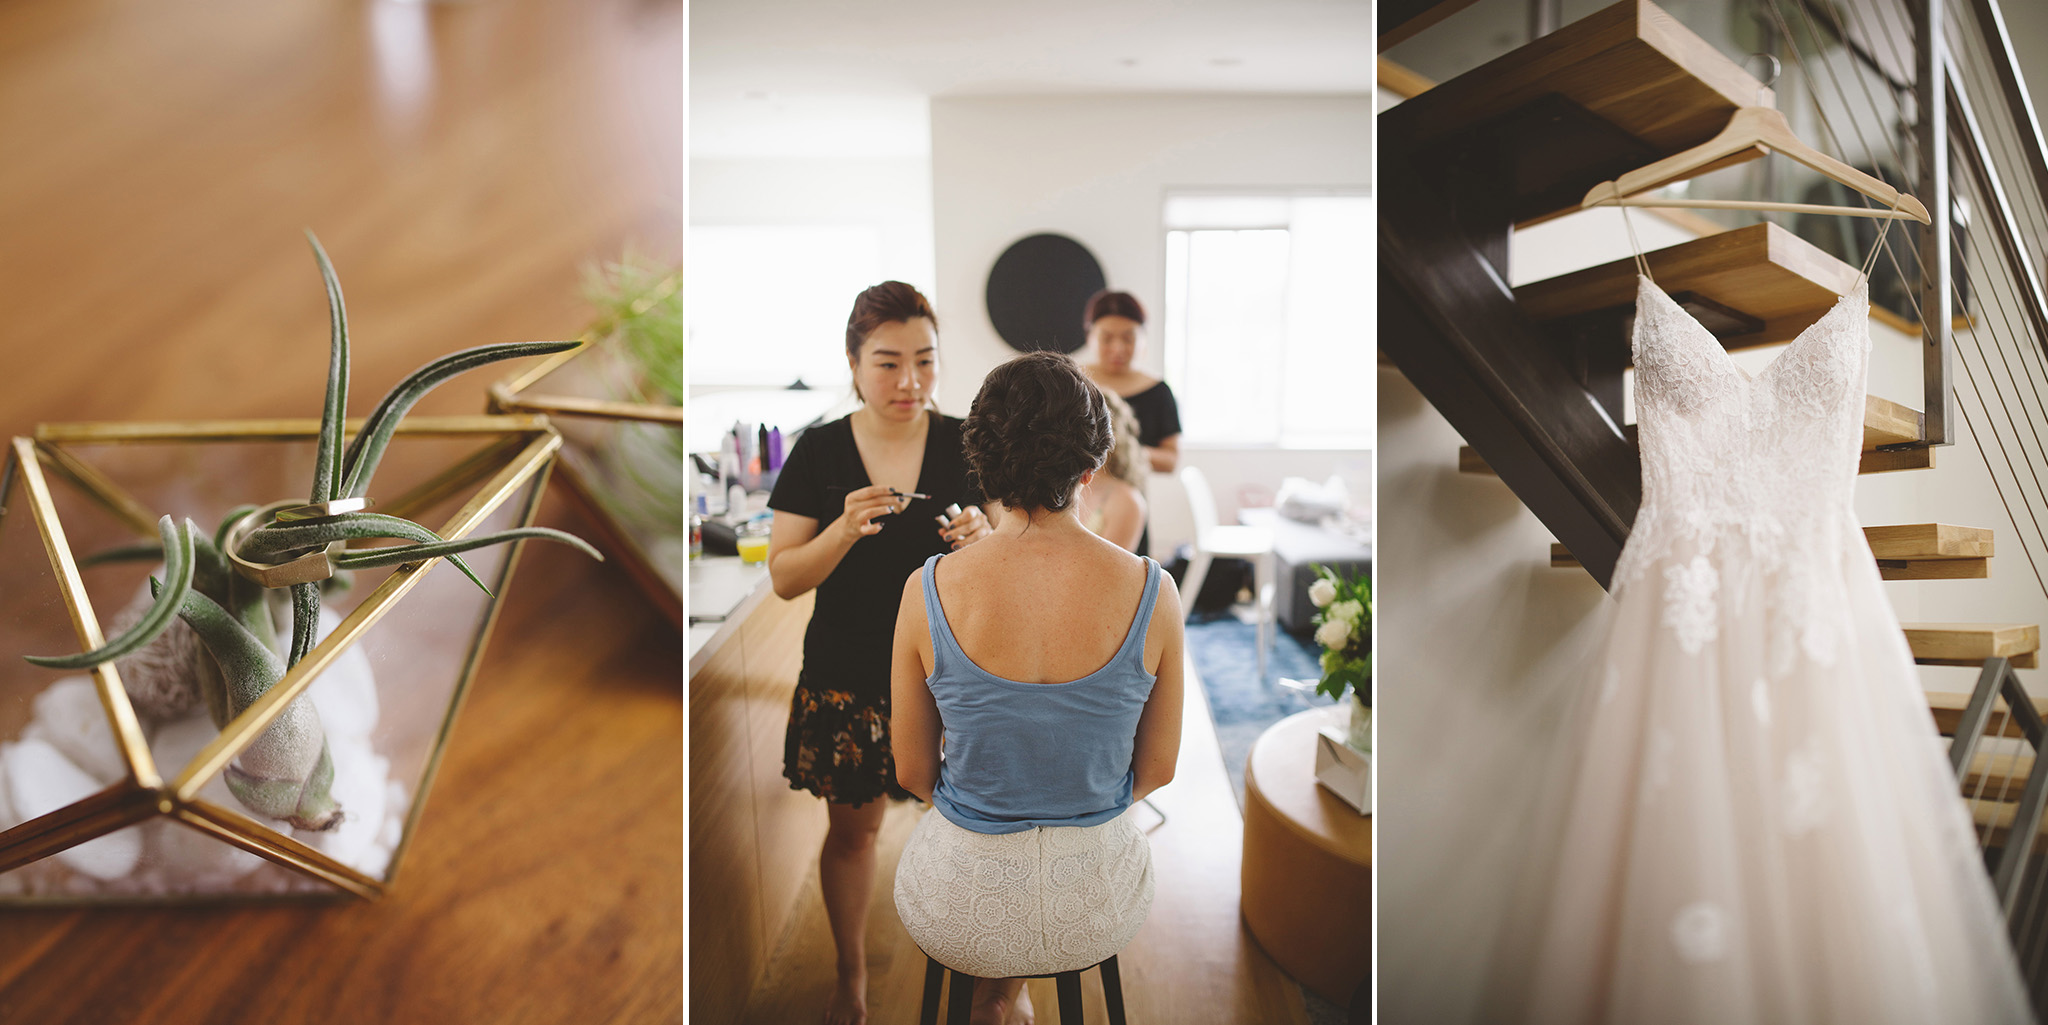 A modern wedding in San Francisco